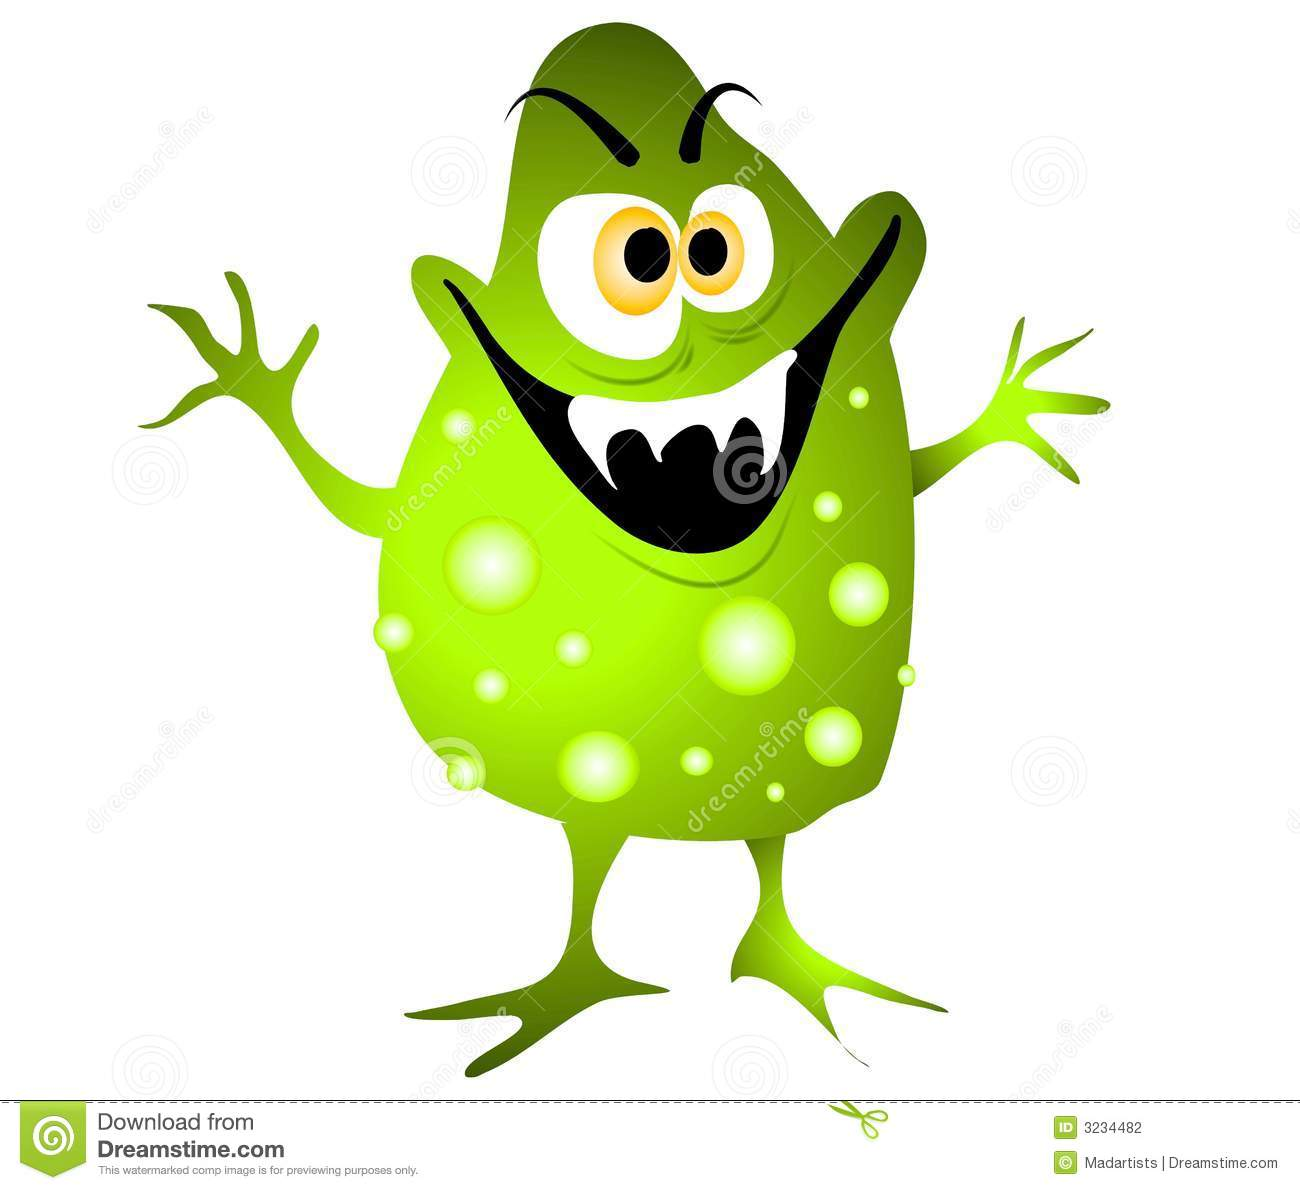 Clip Art Germ Clipart funny germs clipart kid clip art cartoon illustration of a nasty looking germ virus or